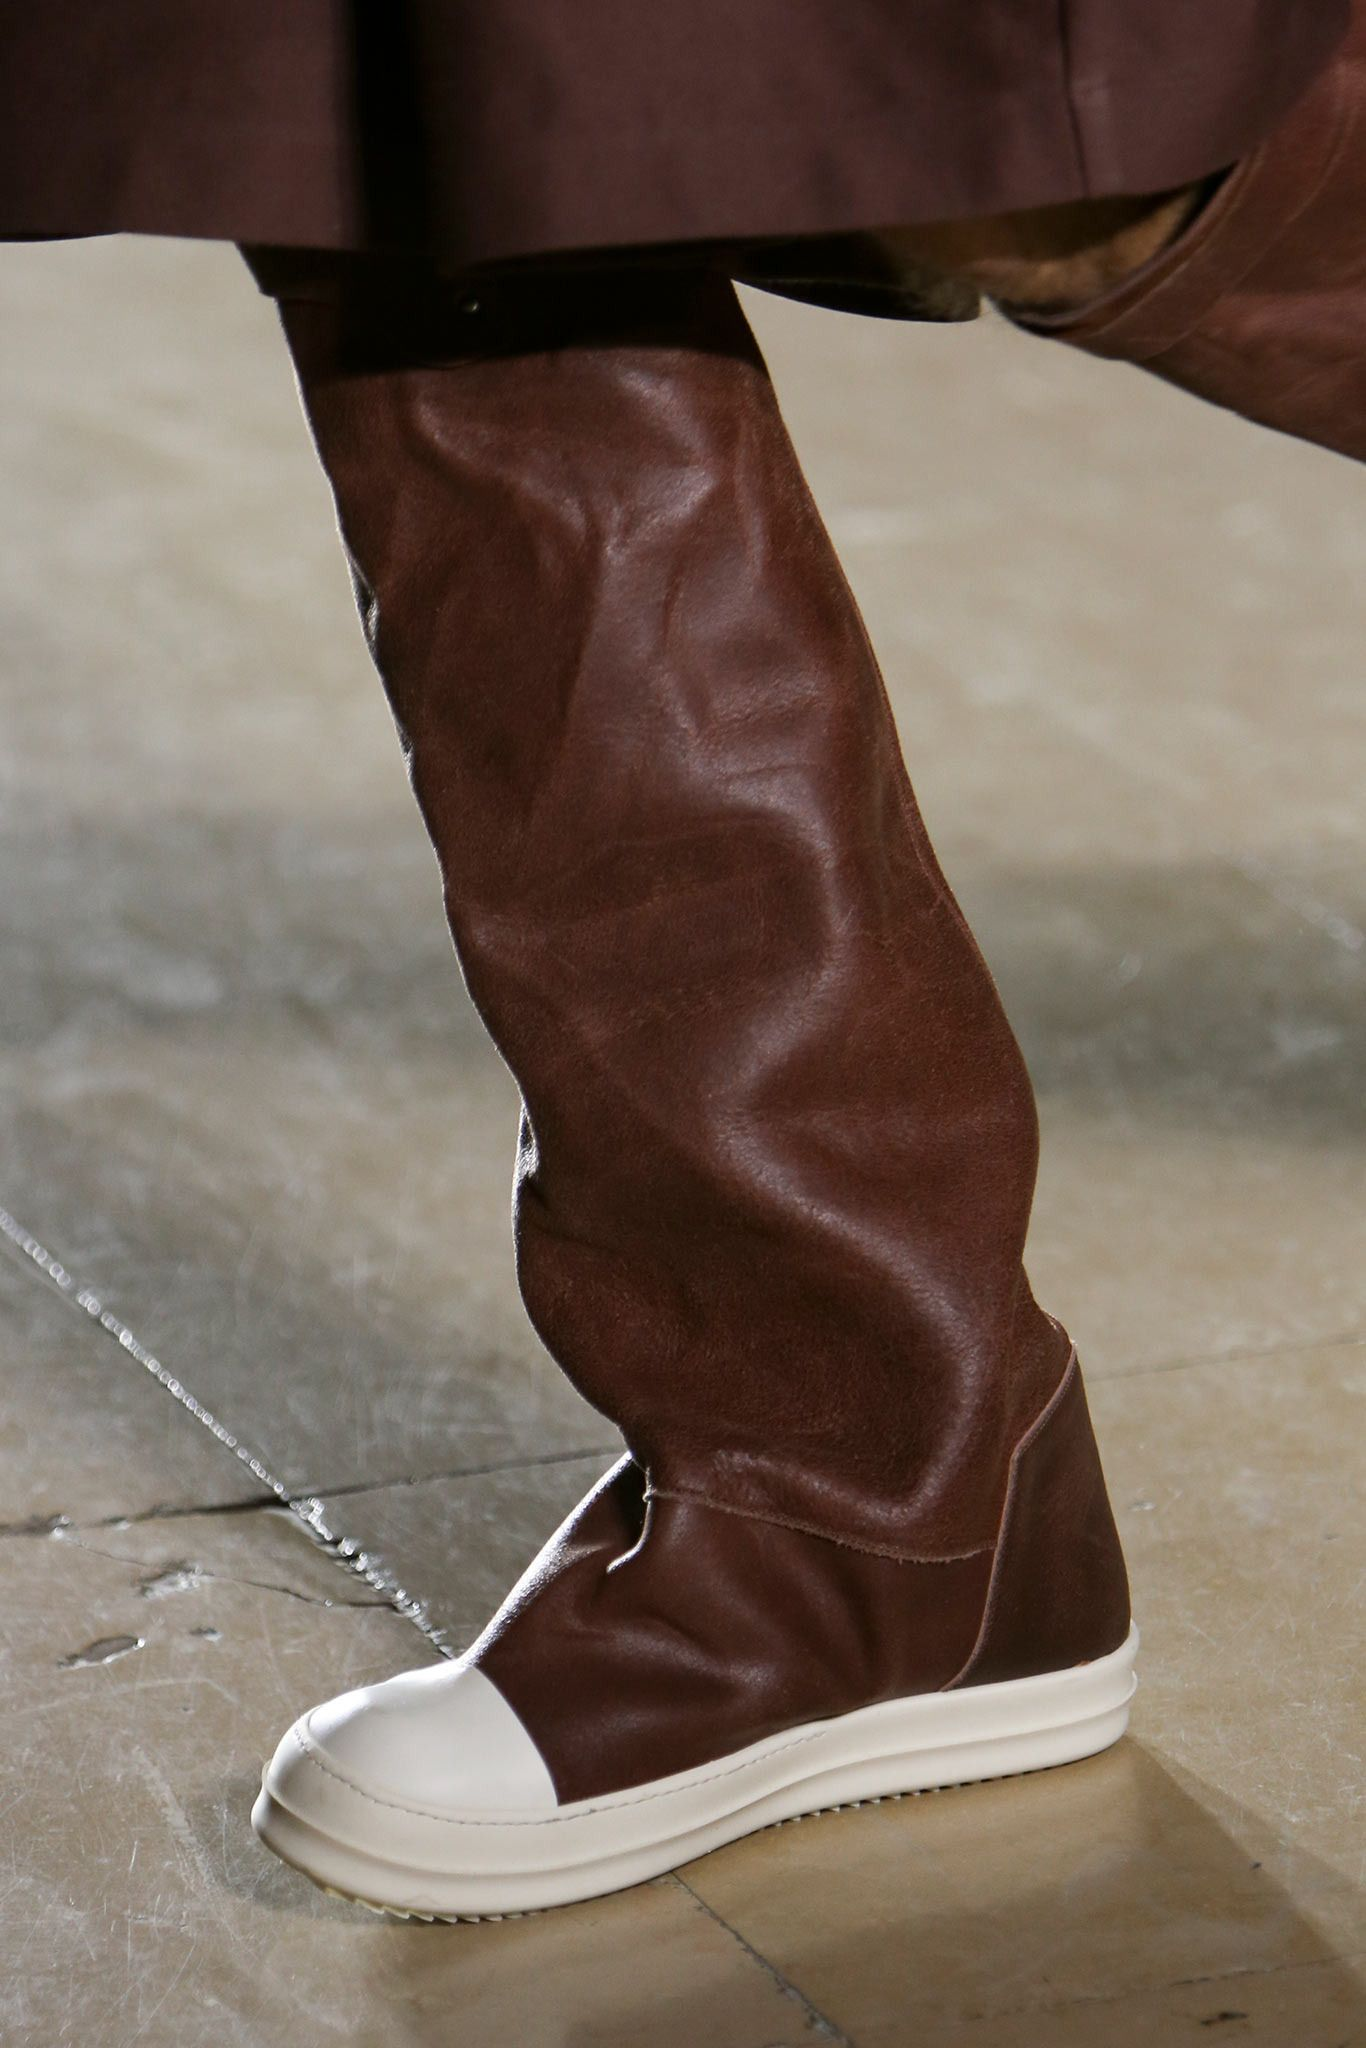 b46d615250de Brown leather white sole knee high sneaker boots. Rick Owens ...